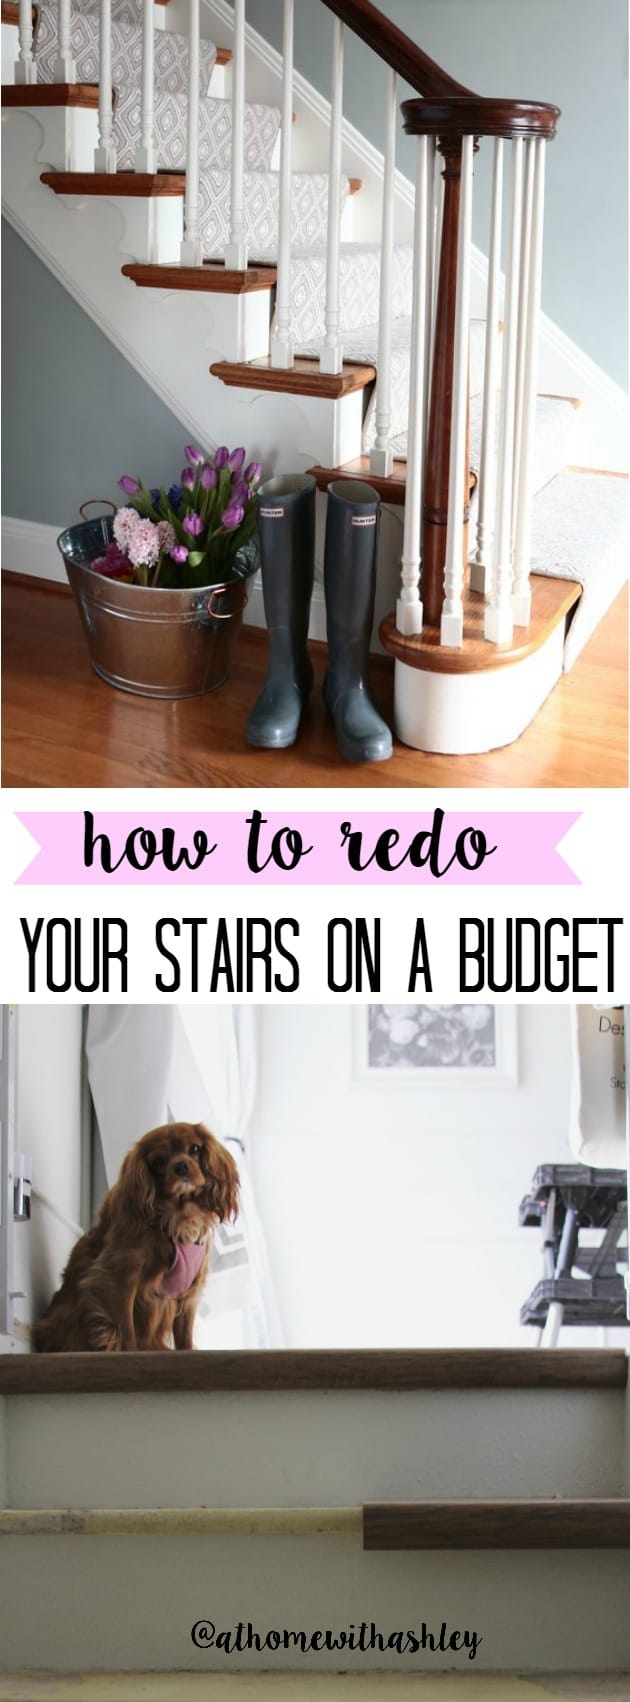 how-to-redo-your-stairs-on-a-budget